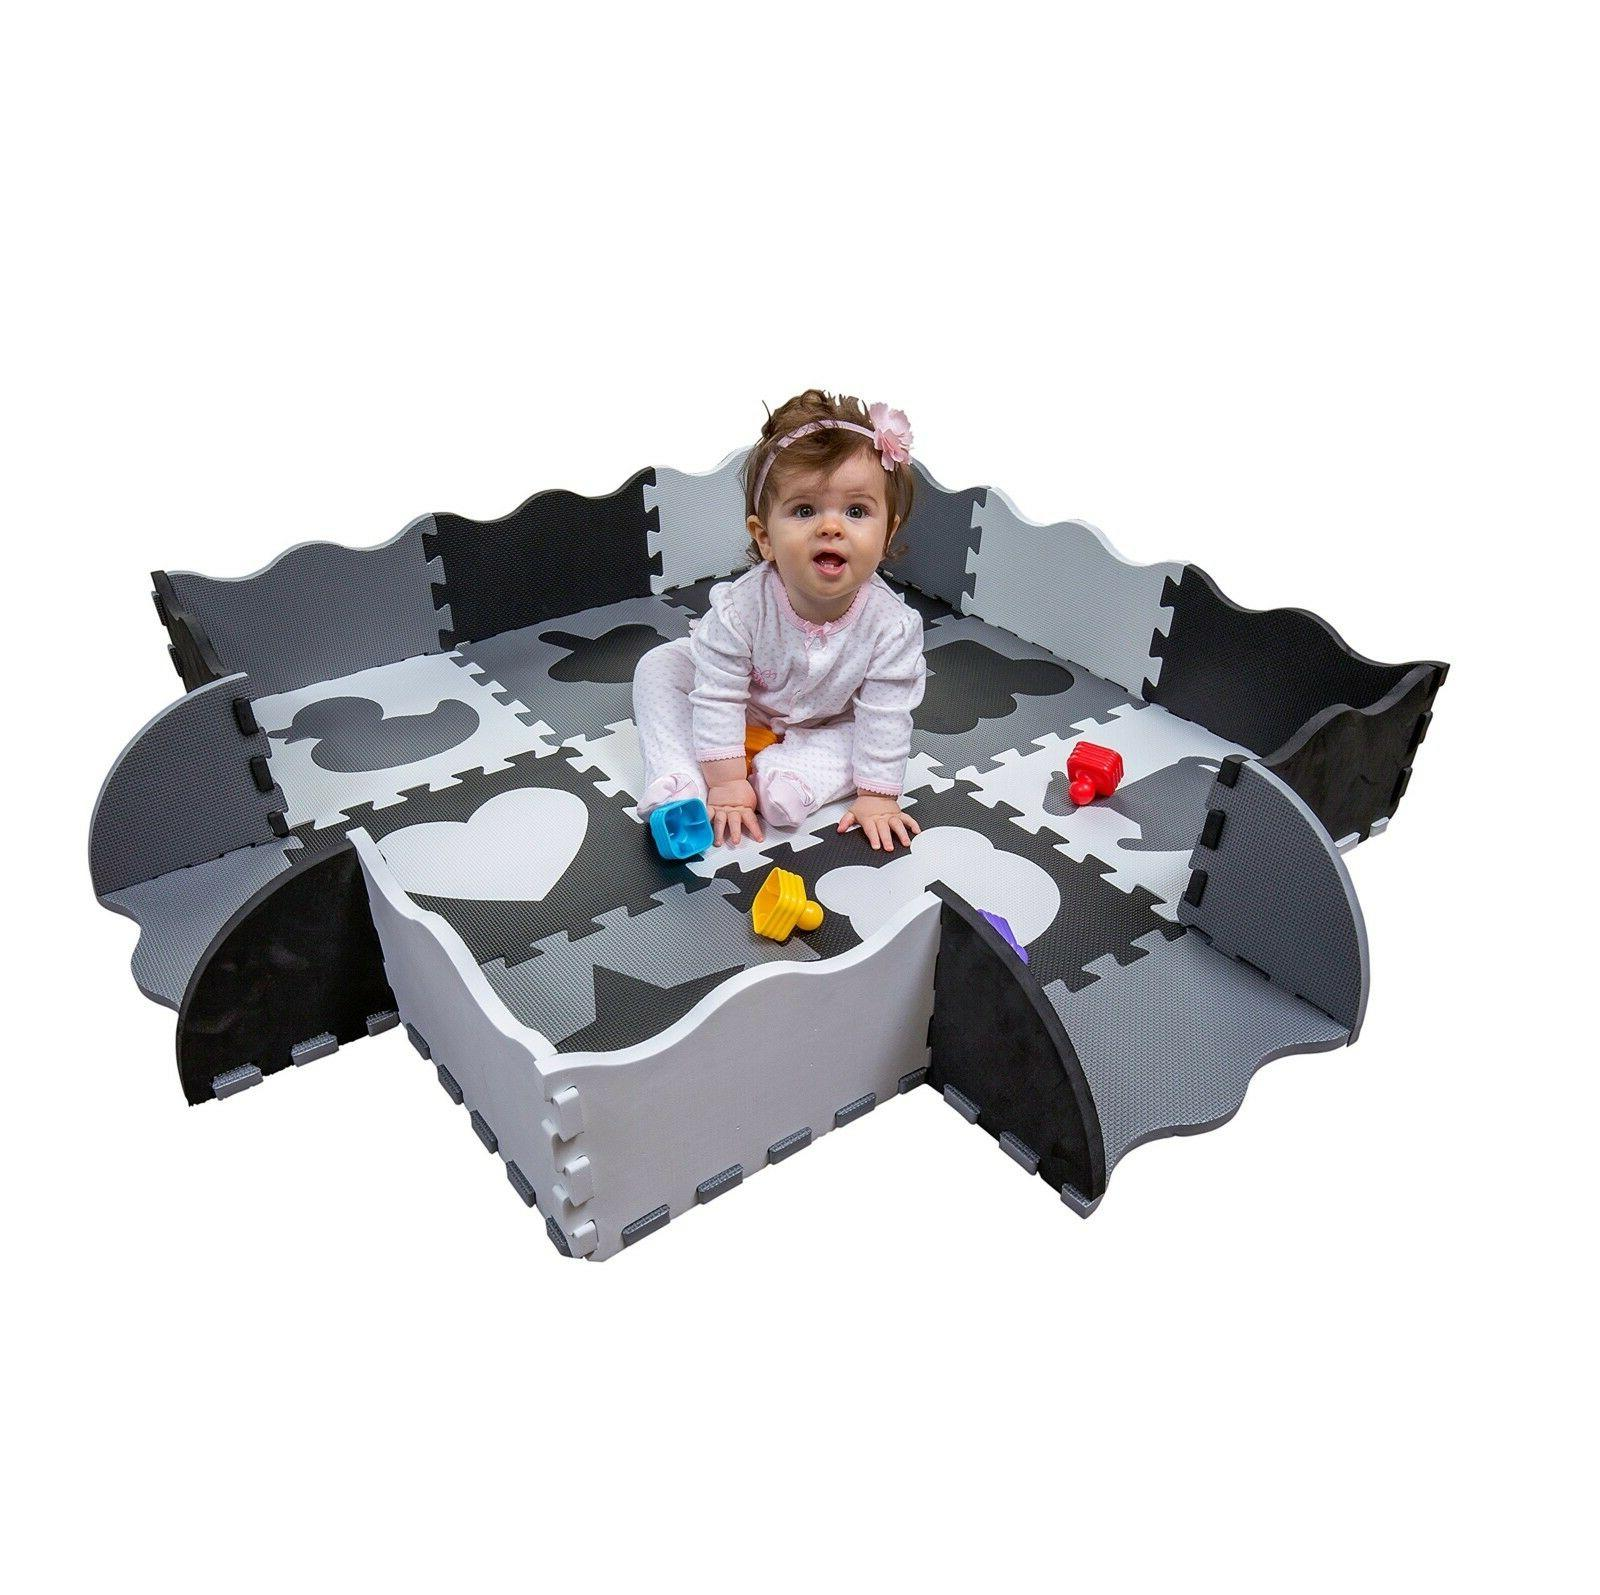 Activity mattress for babies Non Toxic Thick Foam Floor Play